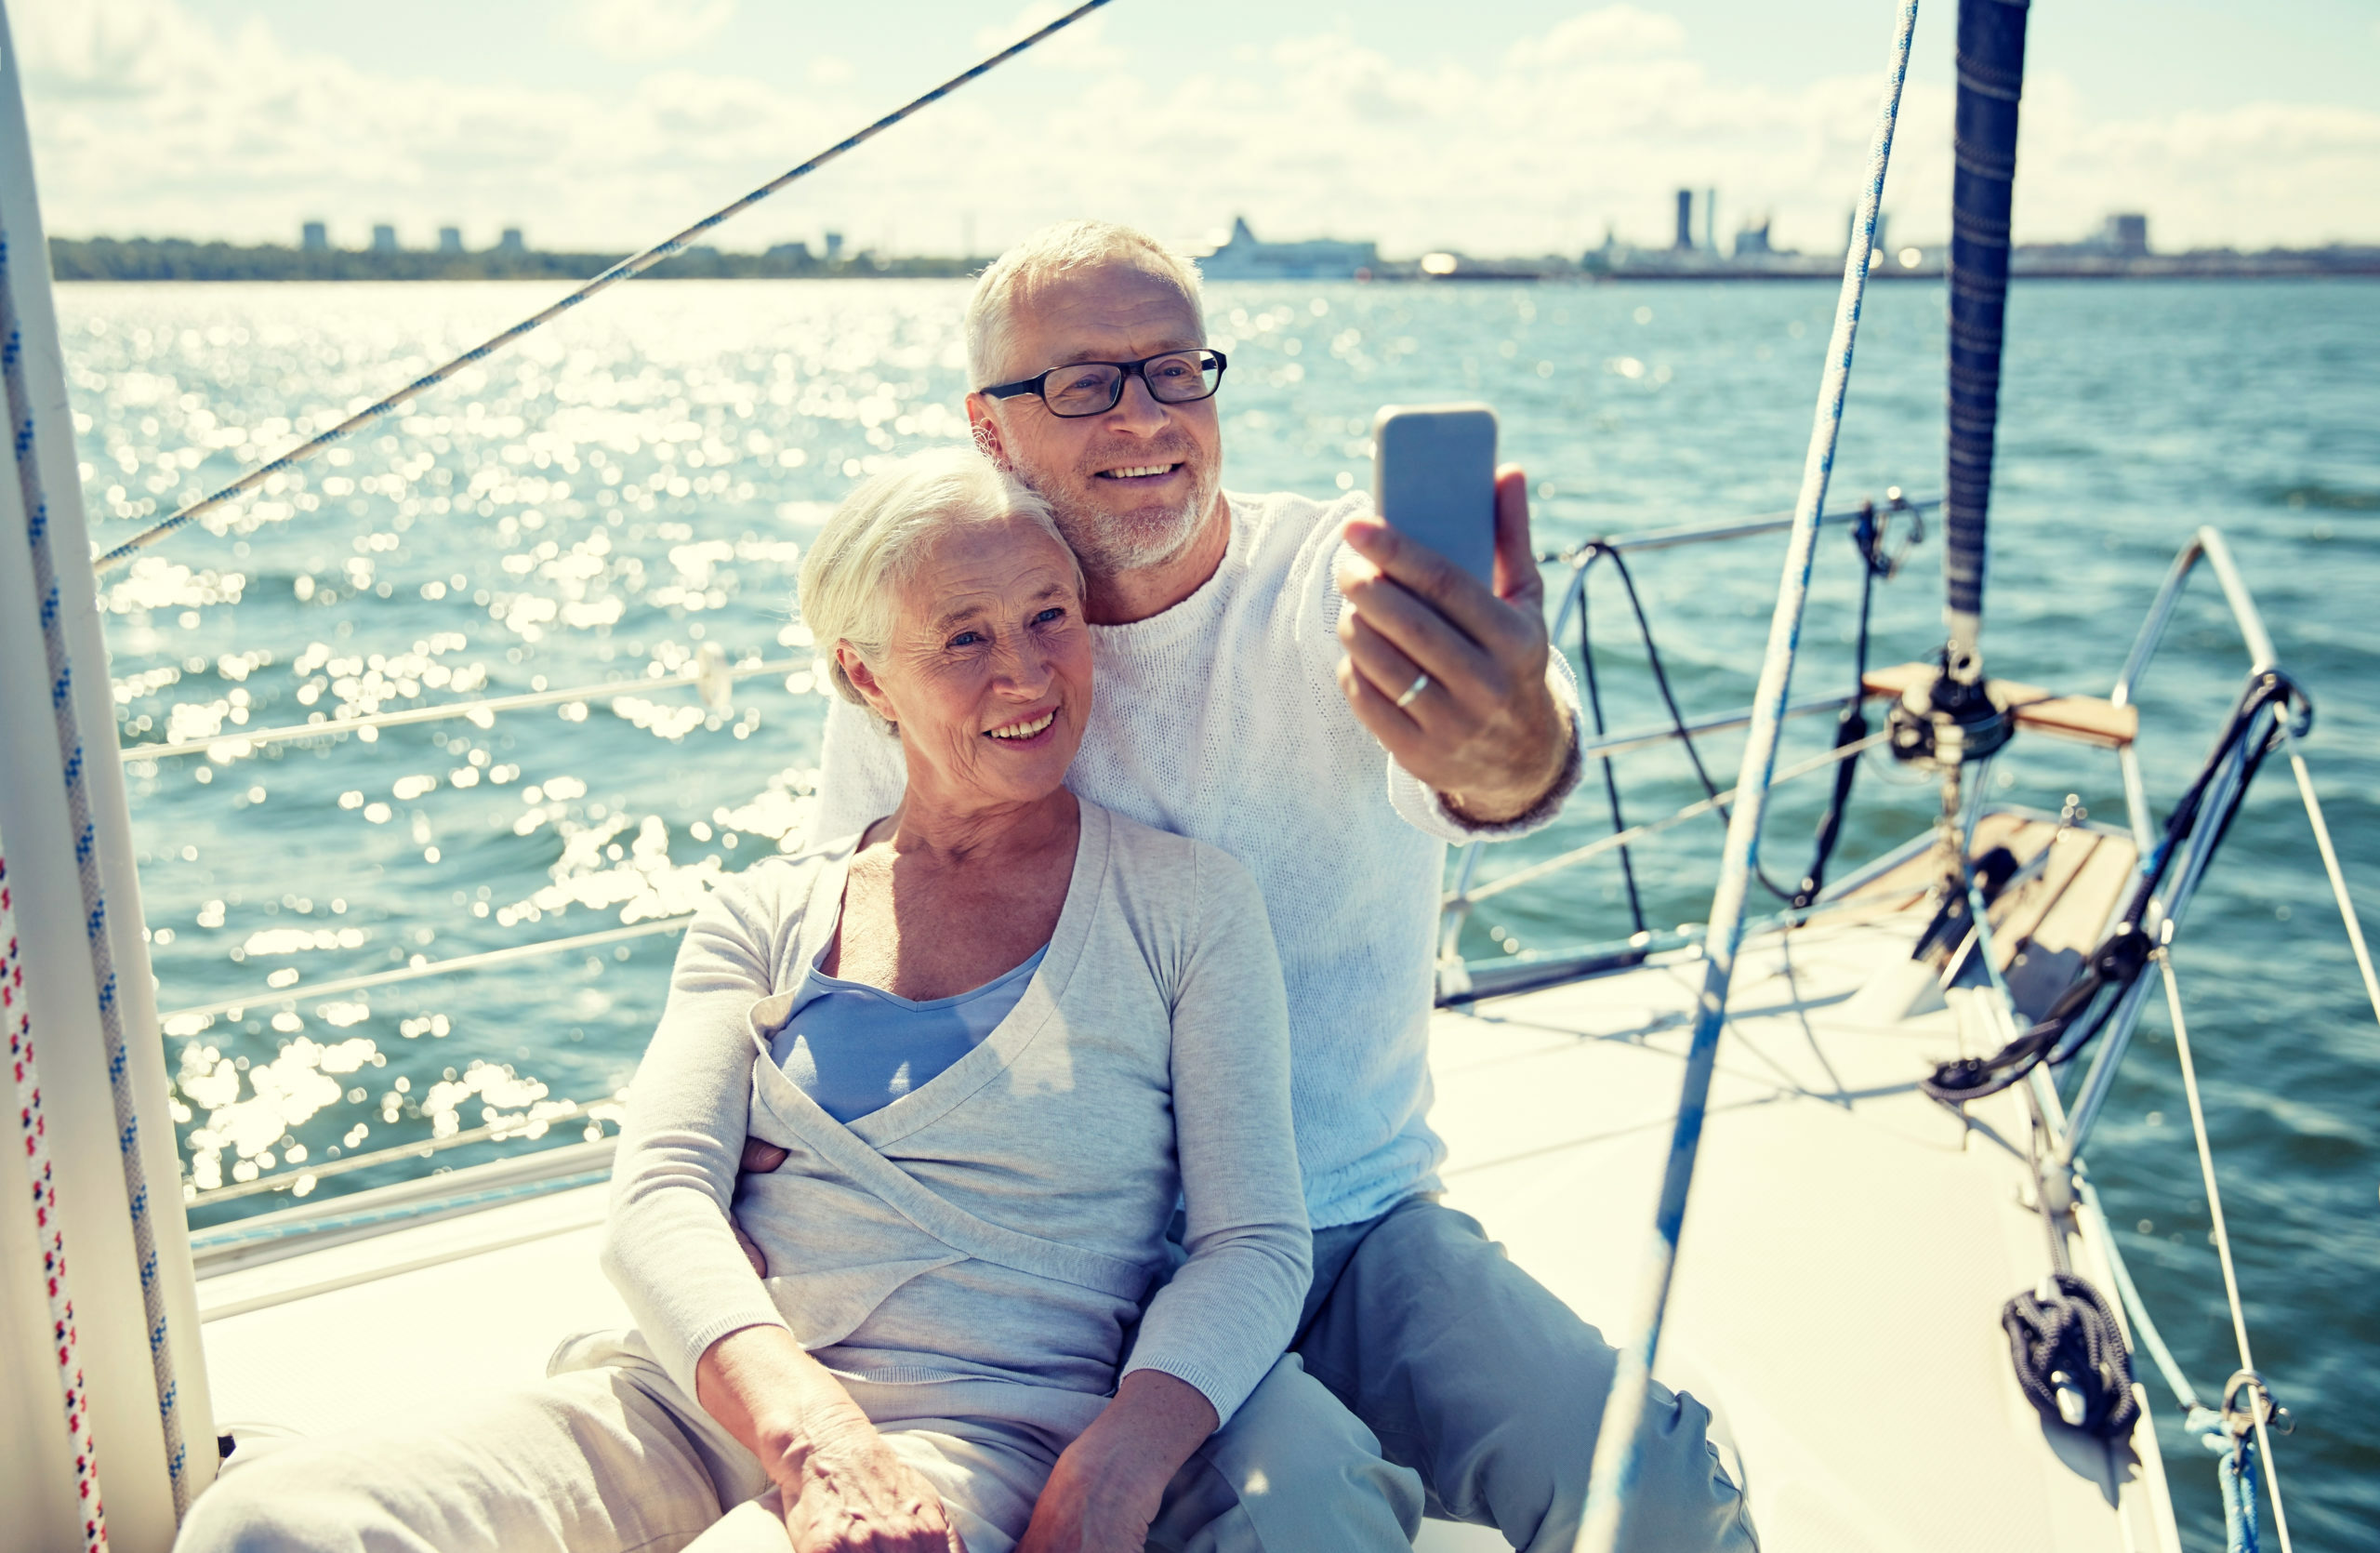 Retired couple taking a photo on boat